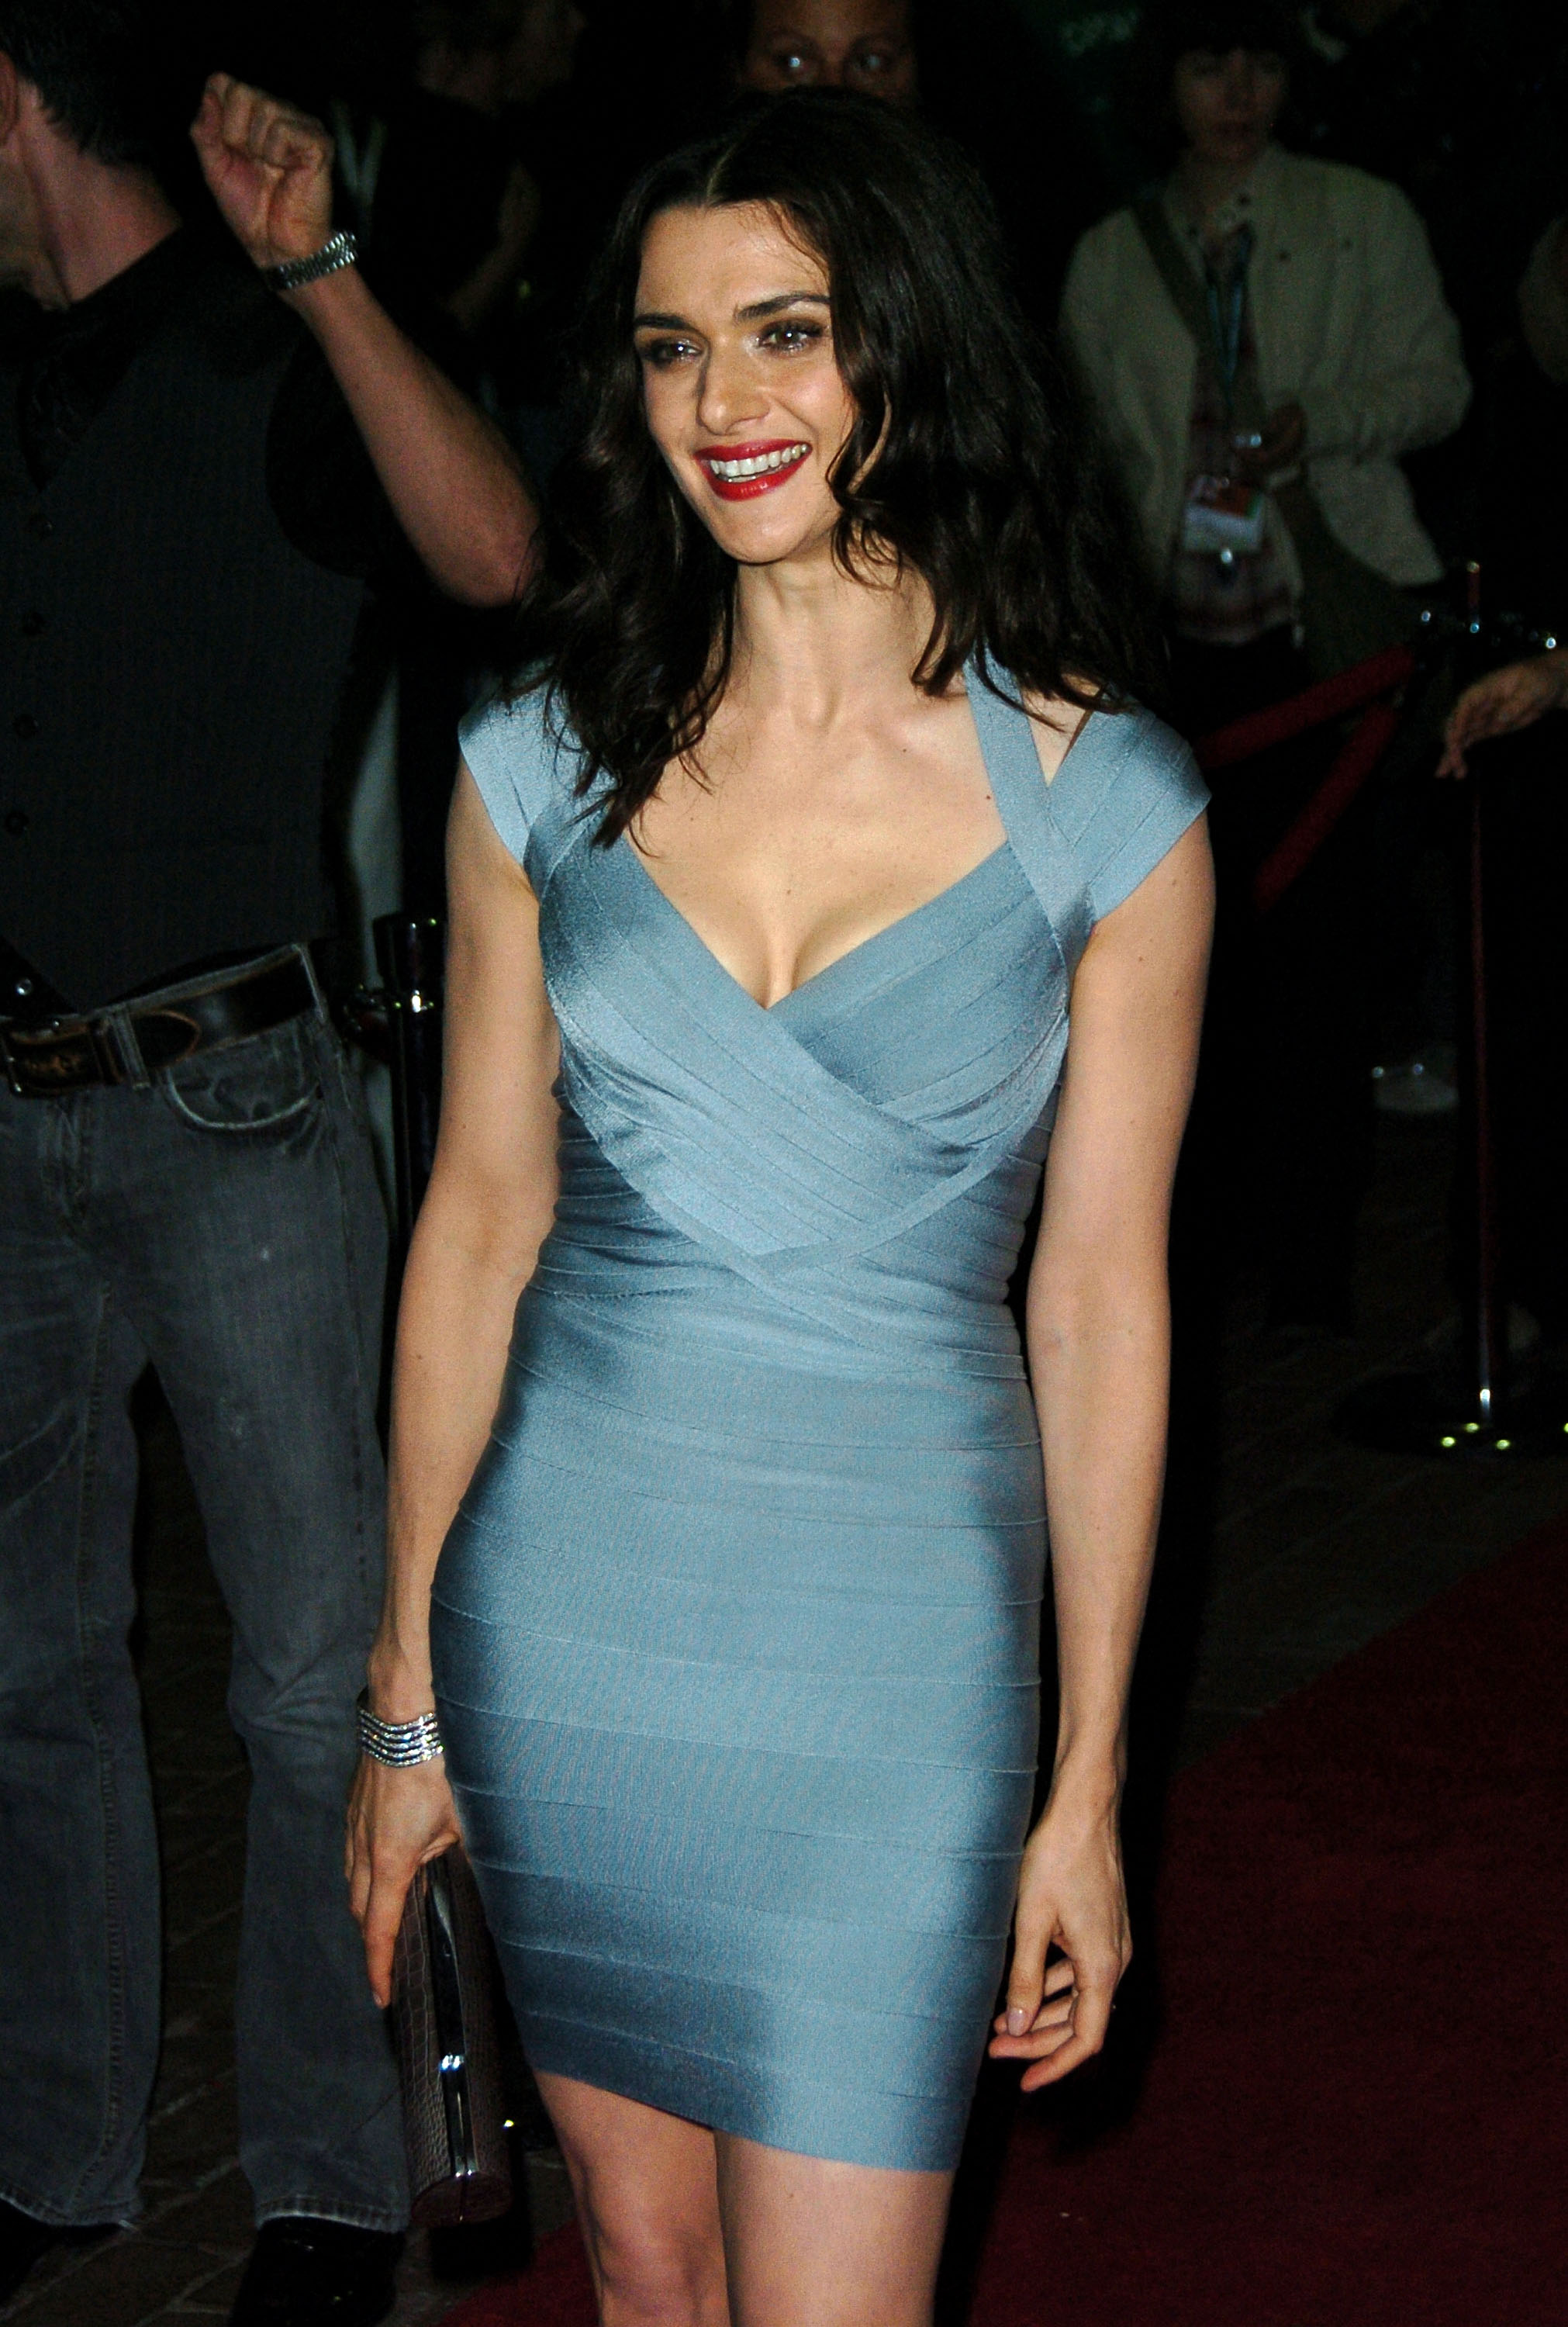 26464_Celebutopia-Rachel_Weisz-The_Brothers_Bloom_premiere_during_the_2008_Toronto_International_Film_Festival-14_122_506lo.jpg